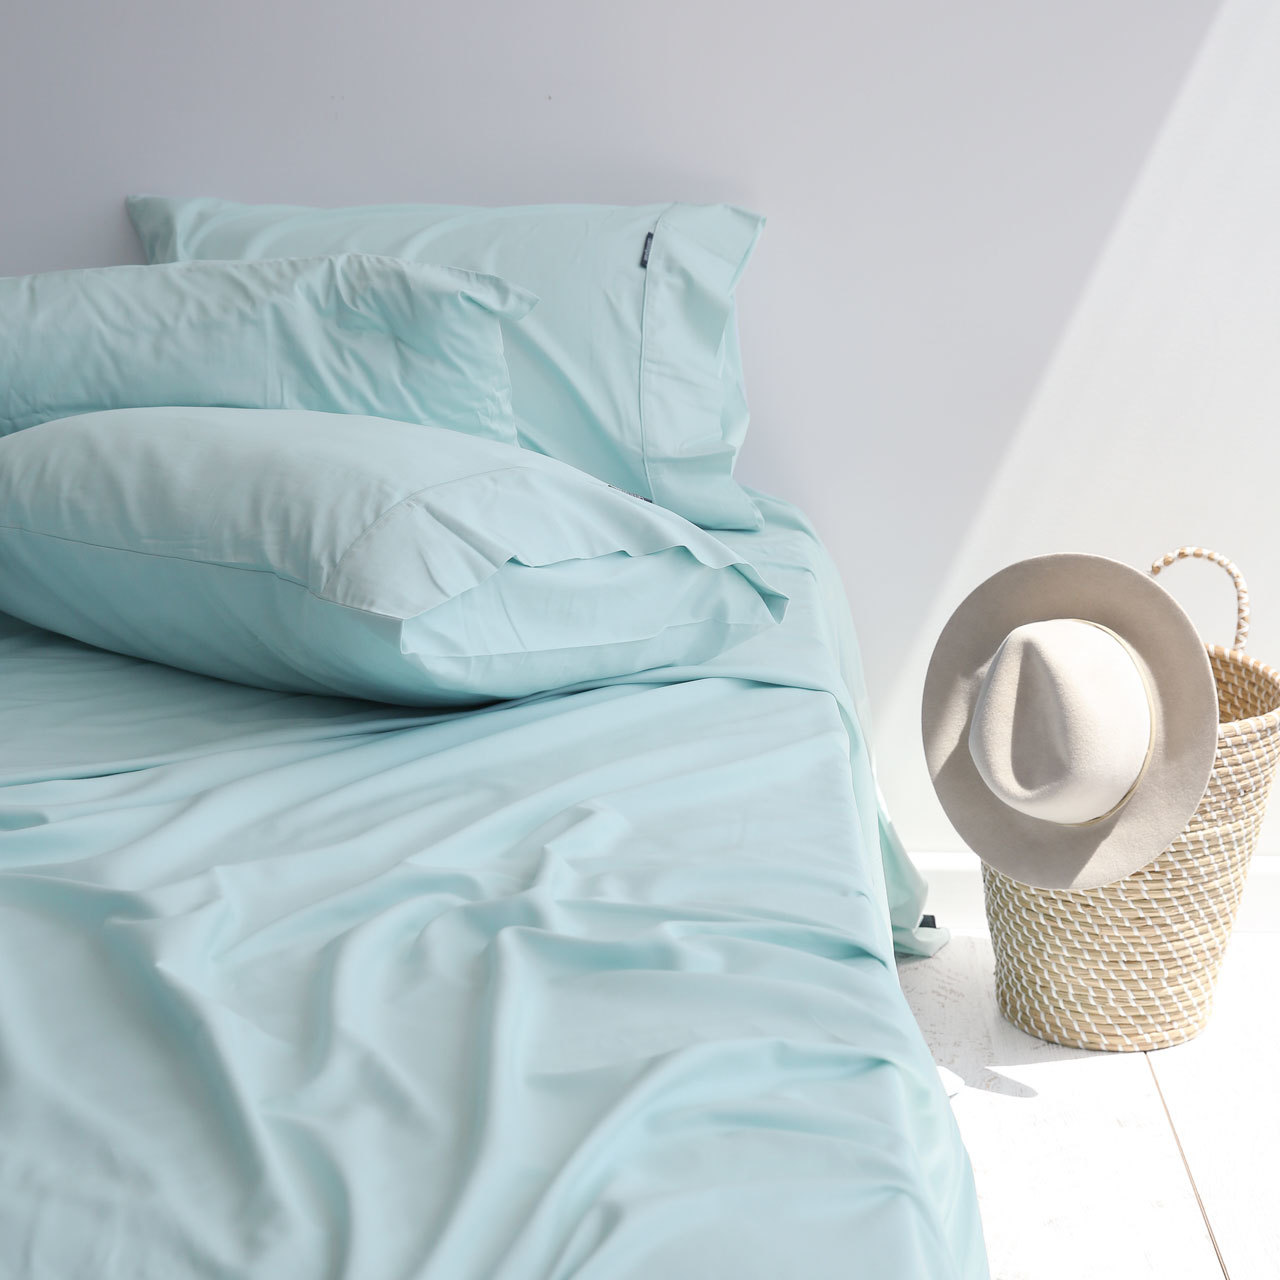 ba0df3274a 4 Secrets For Choosing Best Summer Sheets - Canningvale